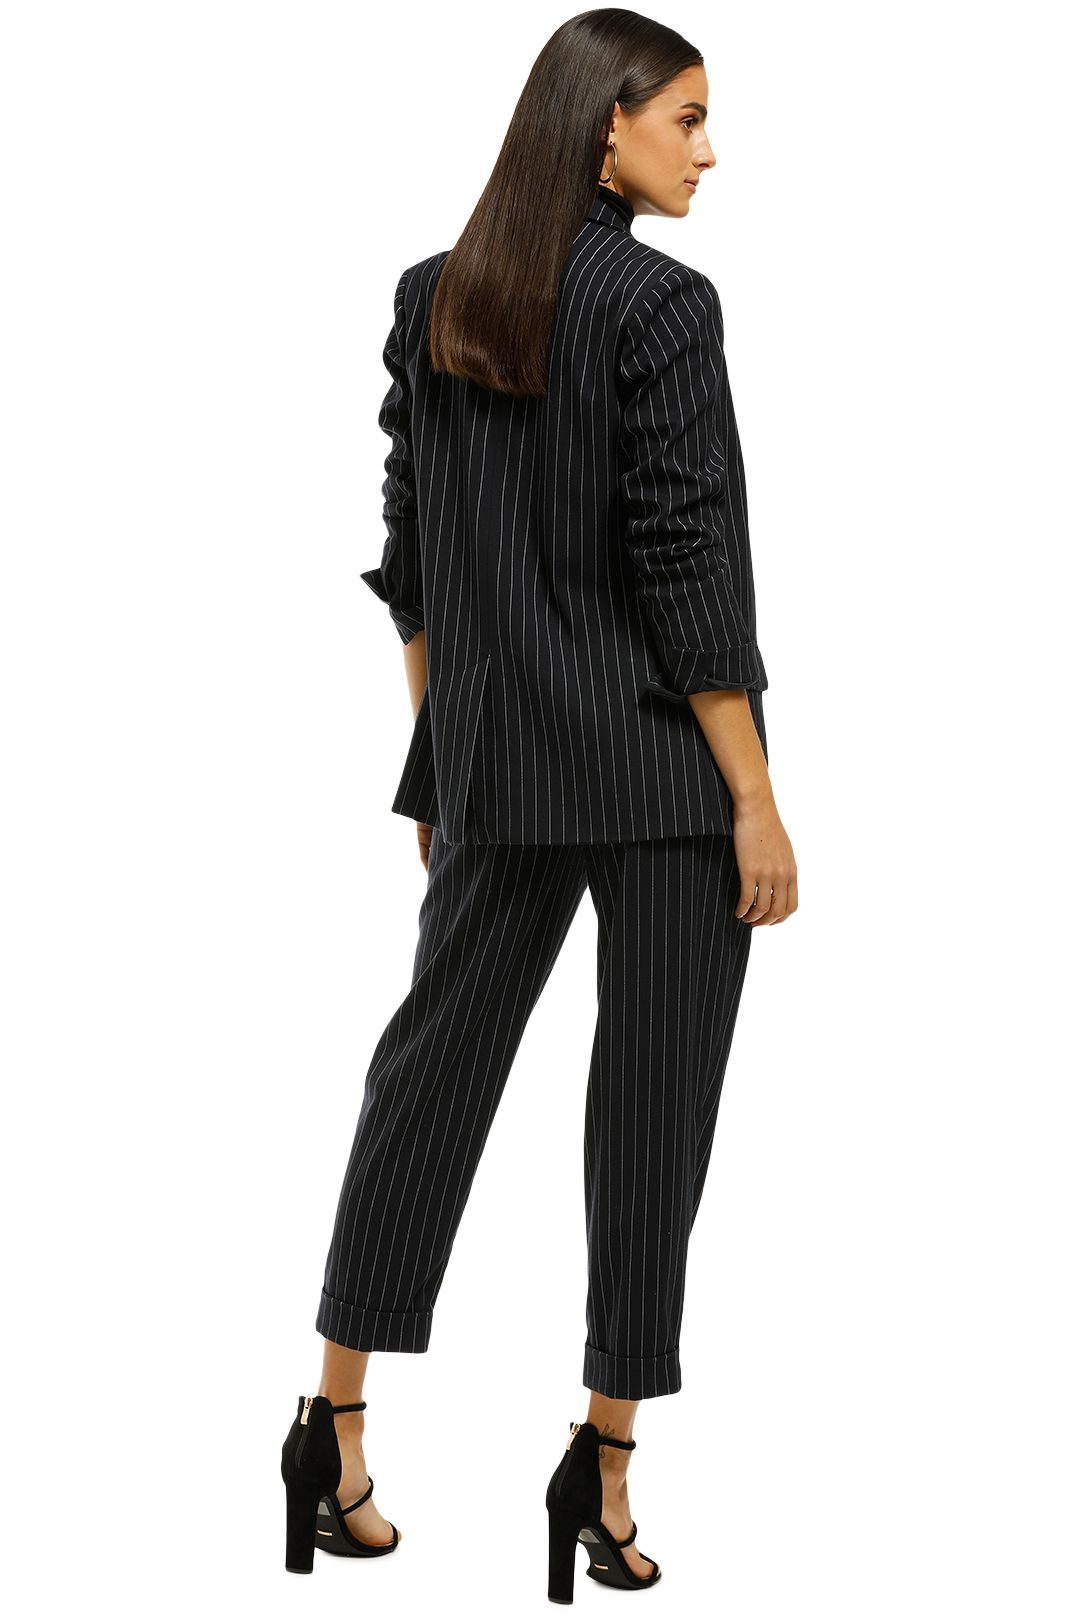 Nicholas the Label - Pinstripe Suiting Pant - Navy - Back